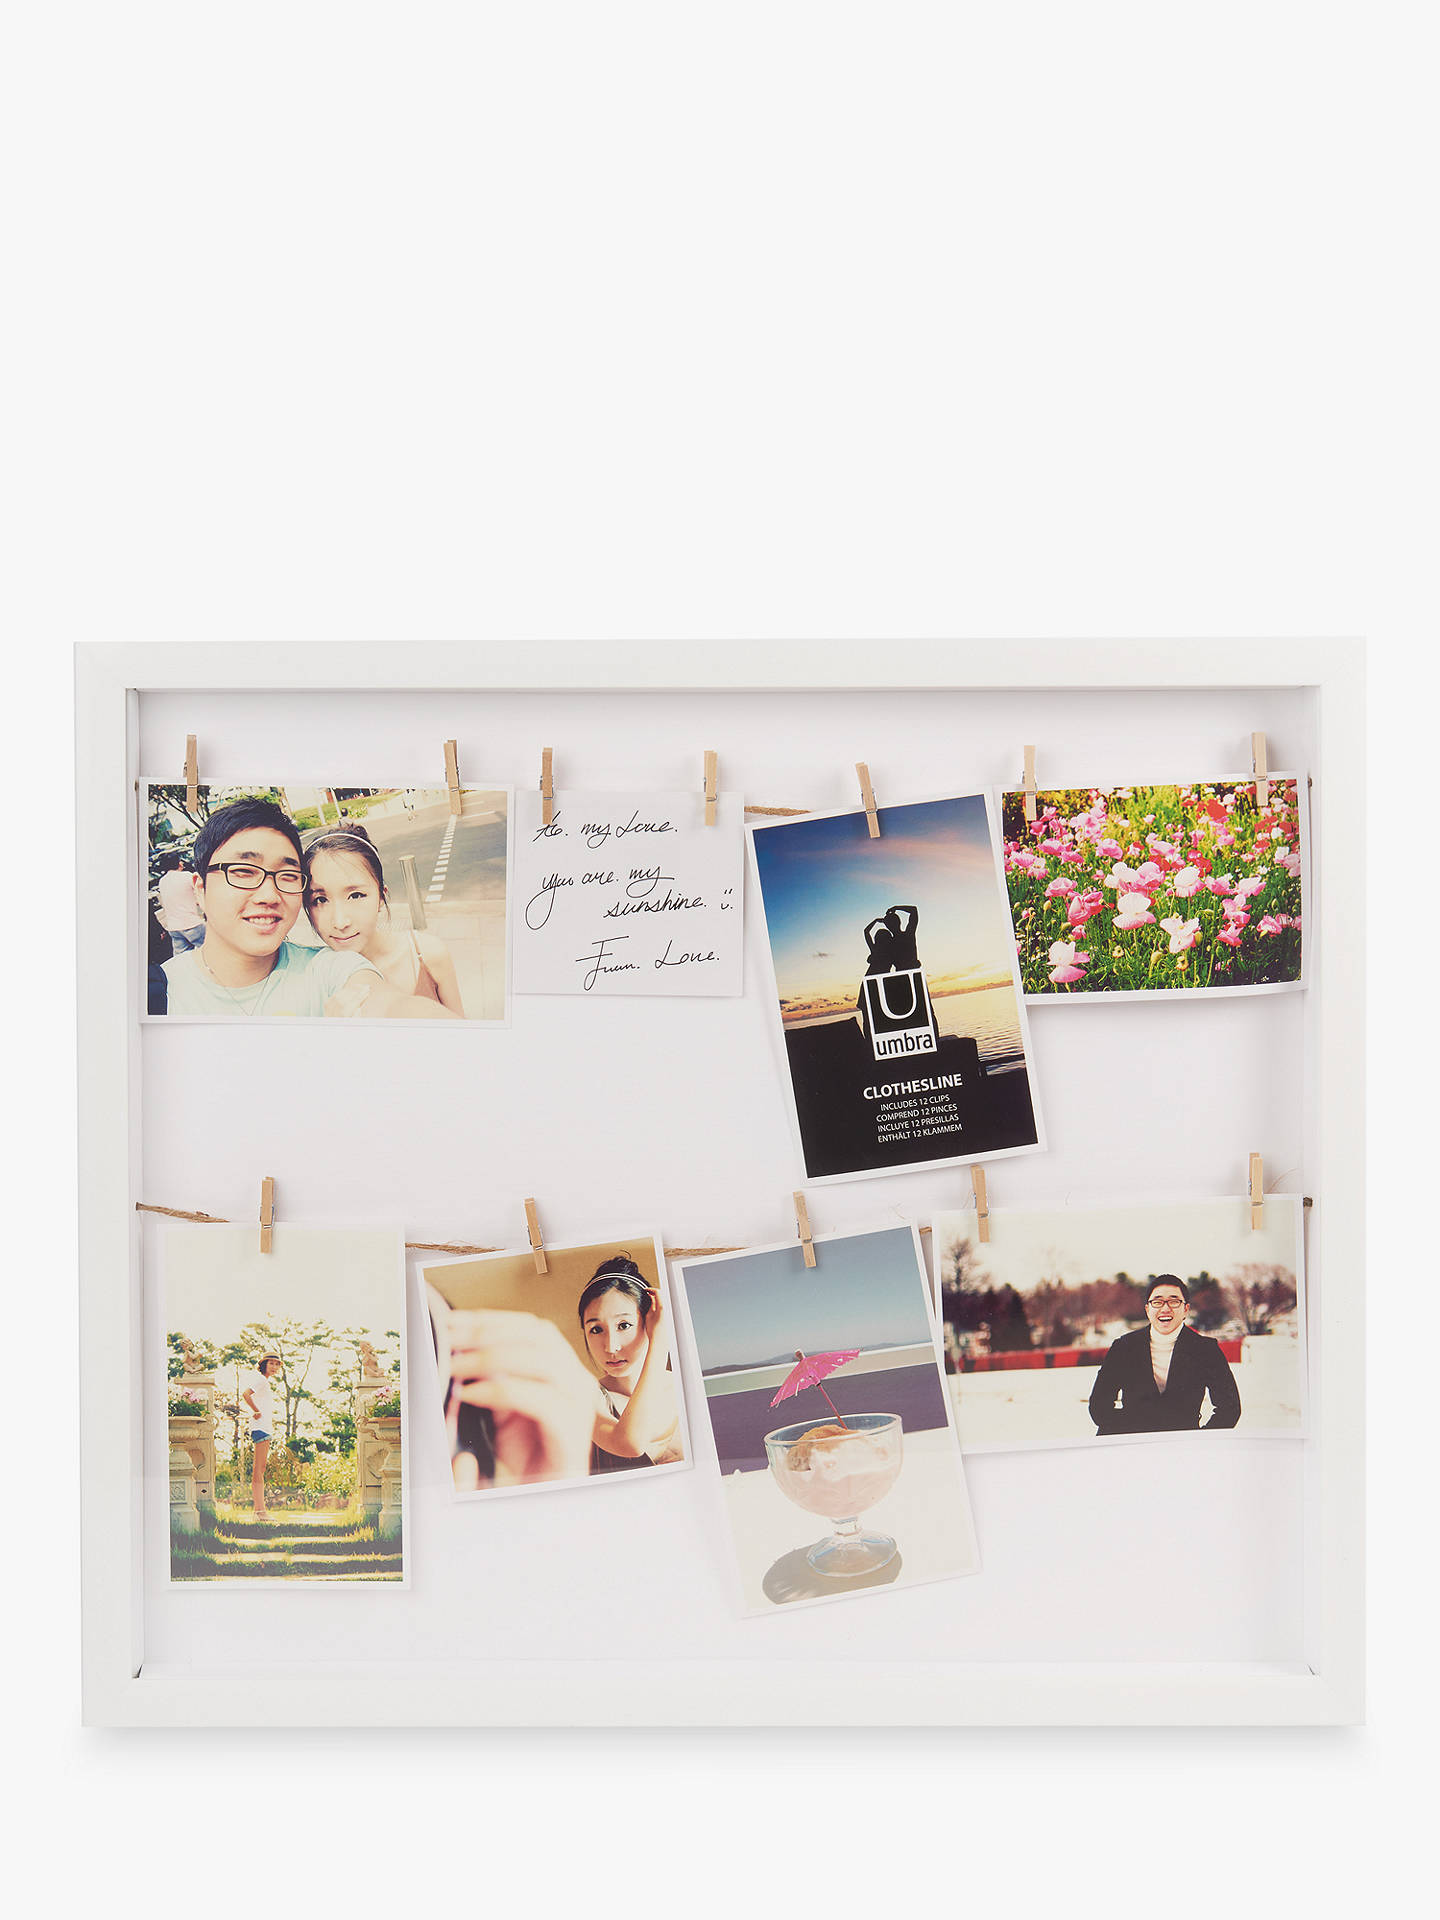 BuyUmbra Clothesline Multi-aperture Photo Frame, White Online at johnlewis.com